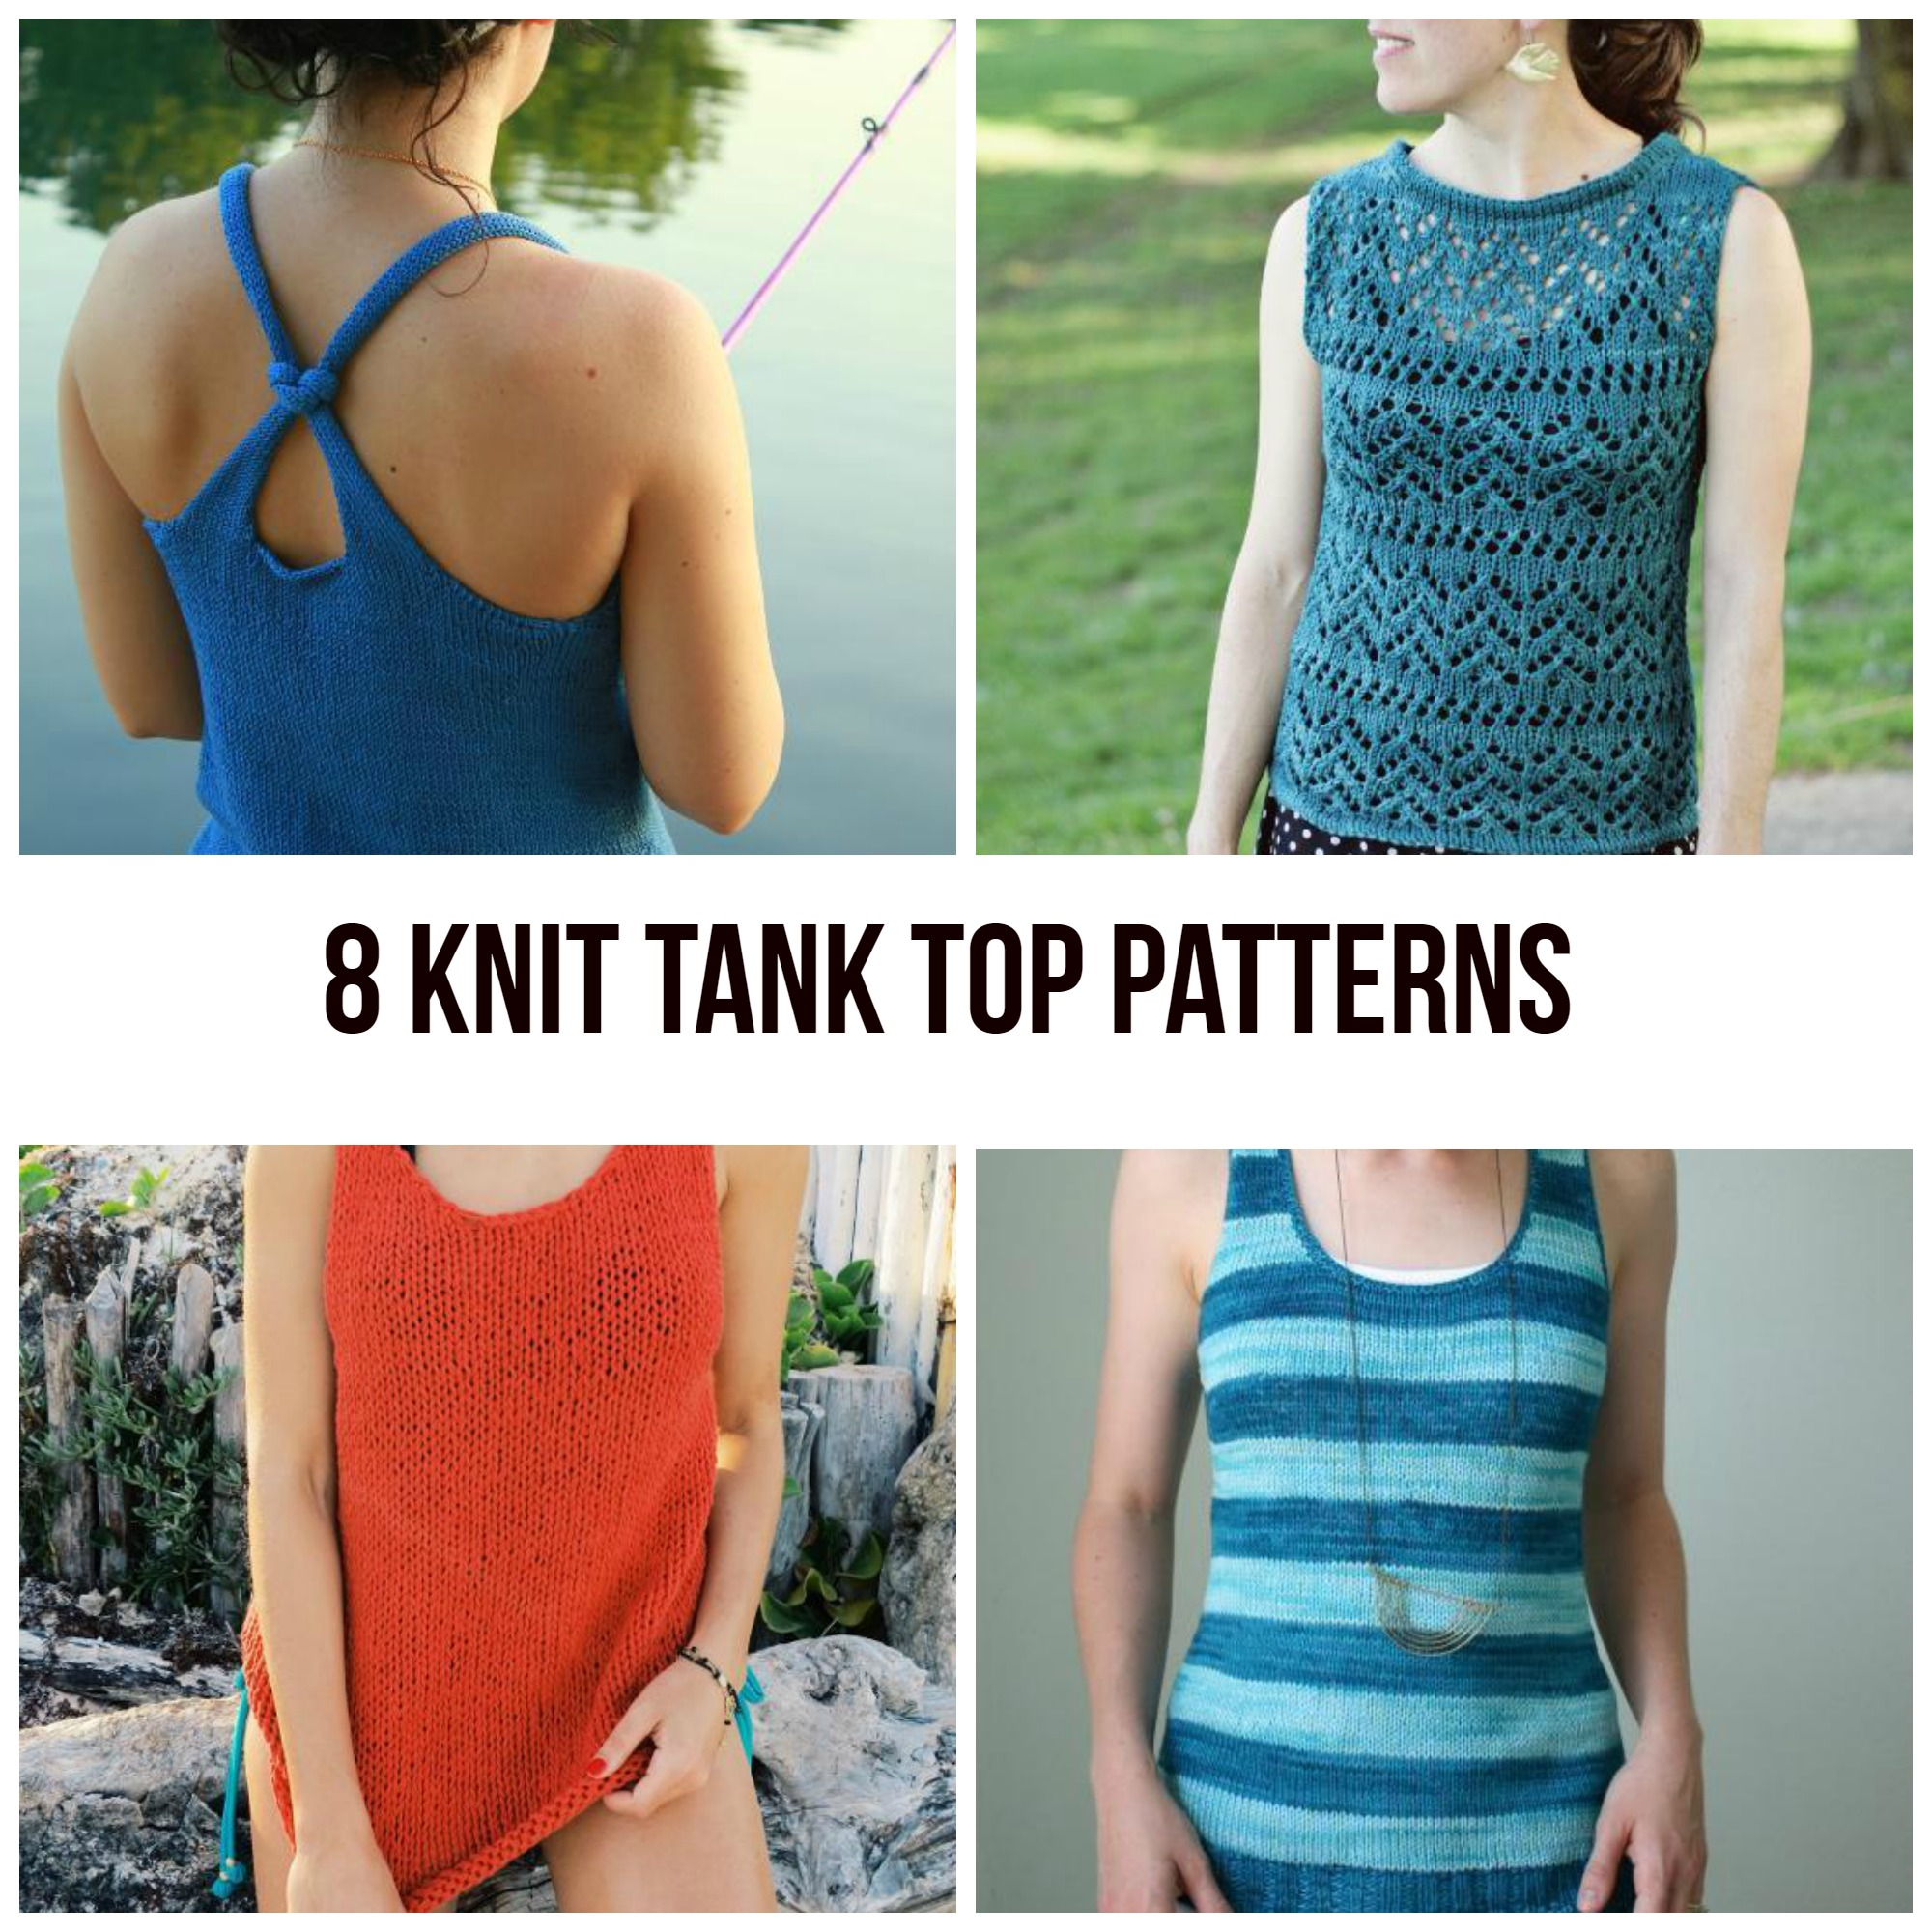 Knit Tank Top Patterns